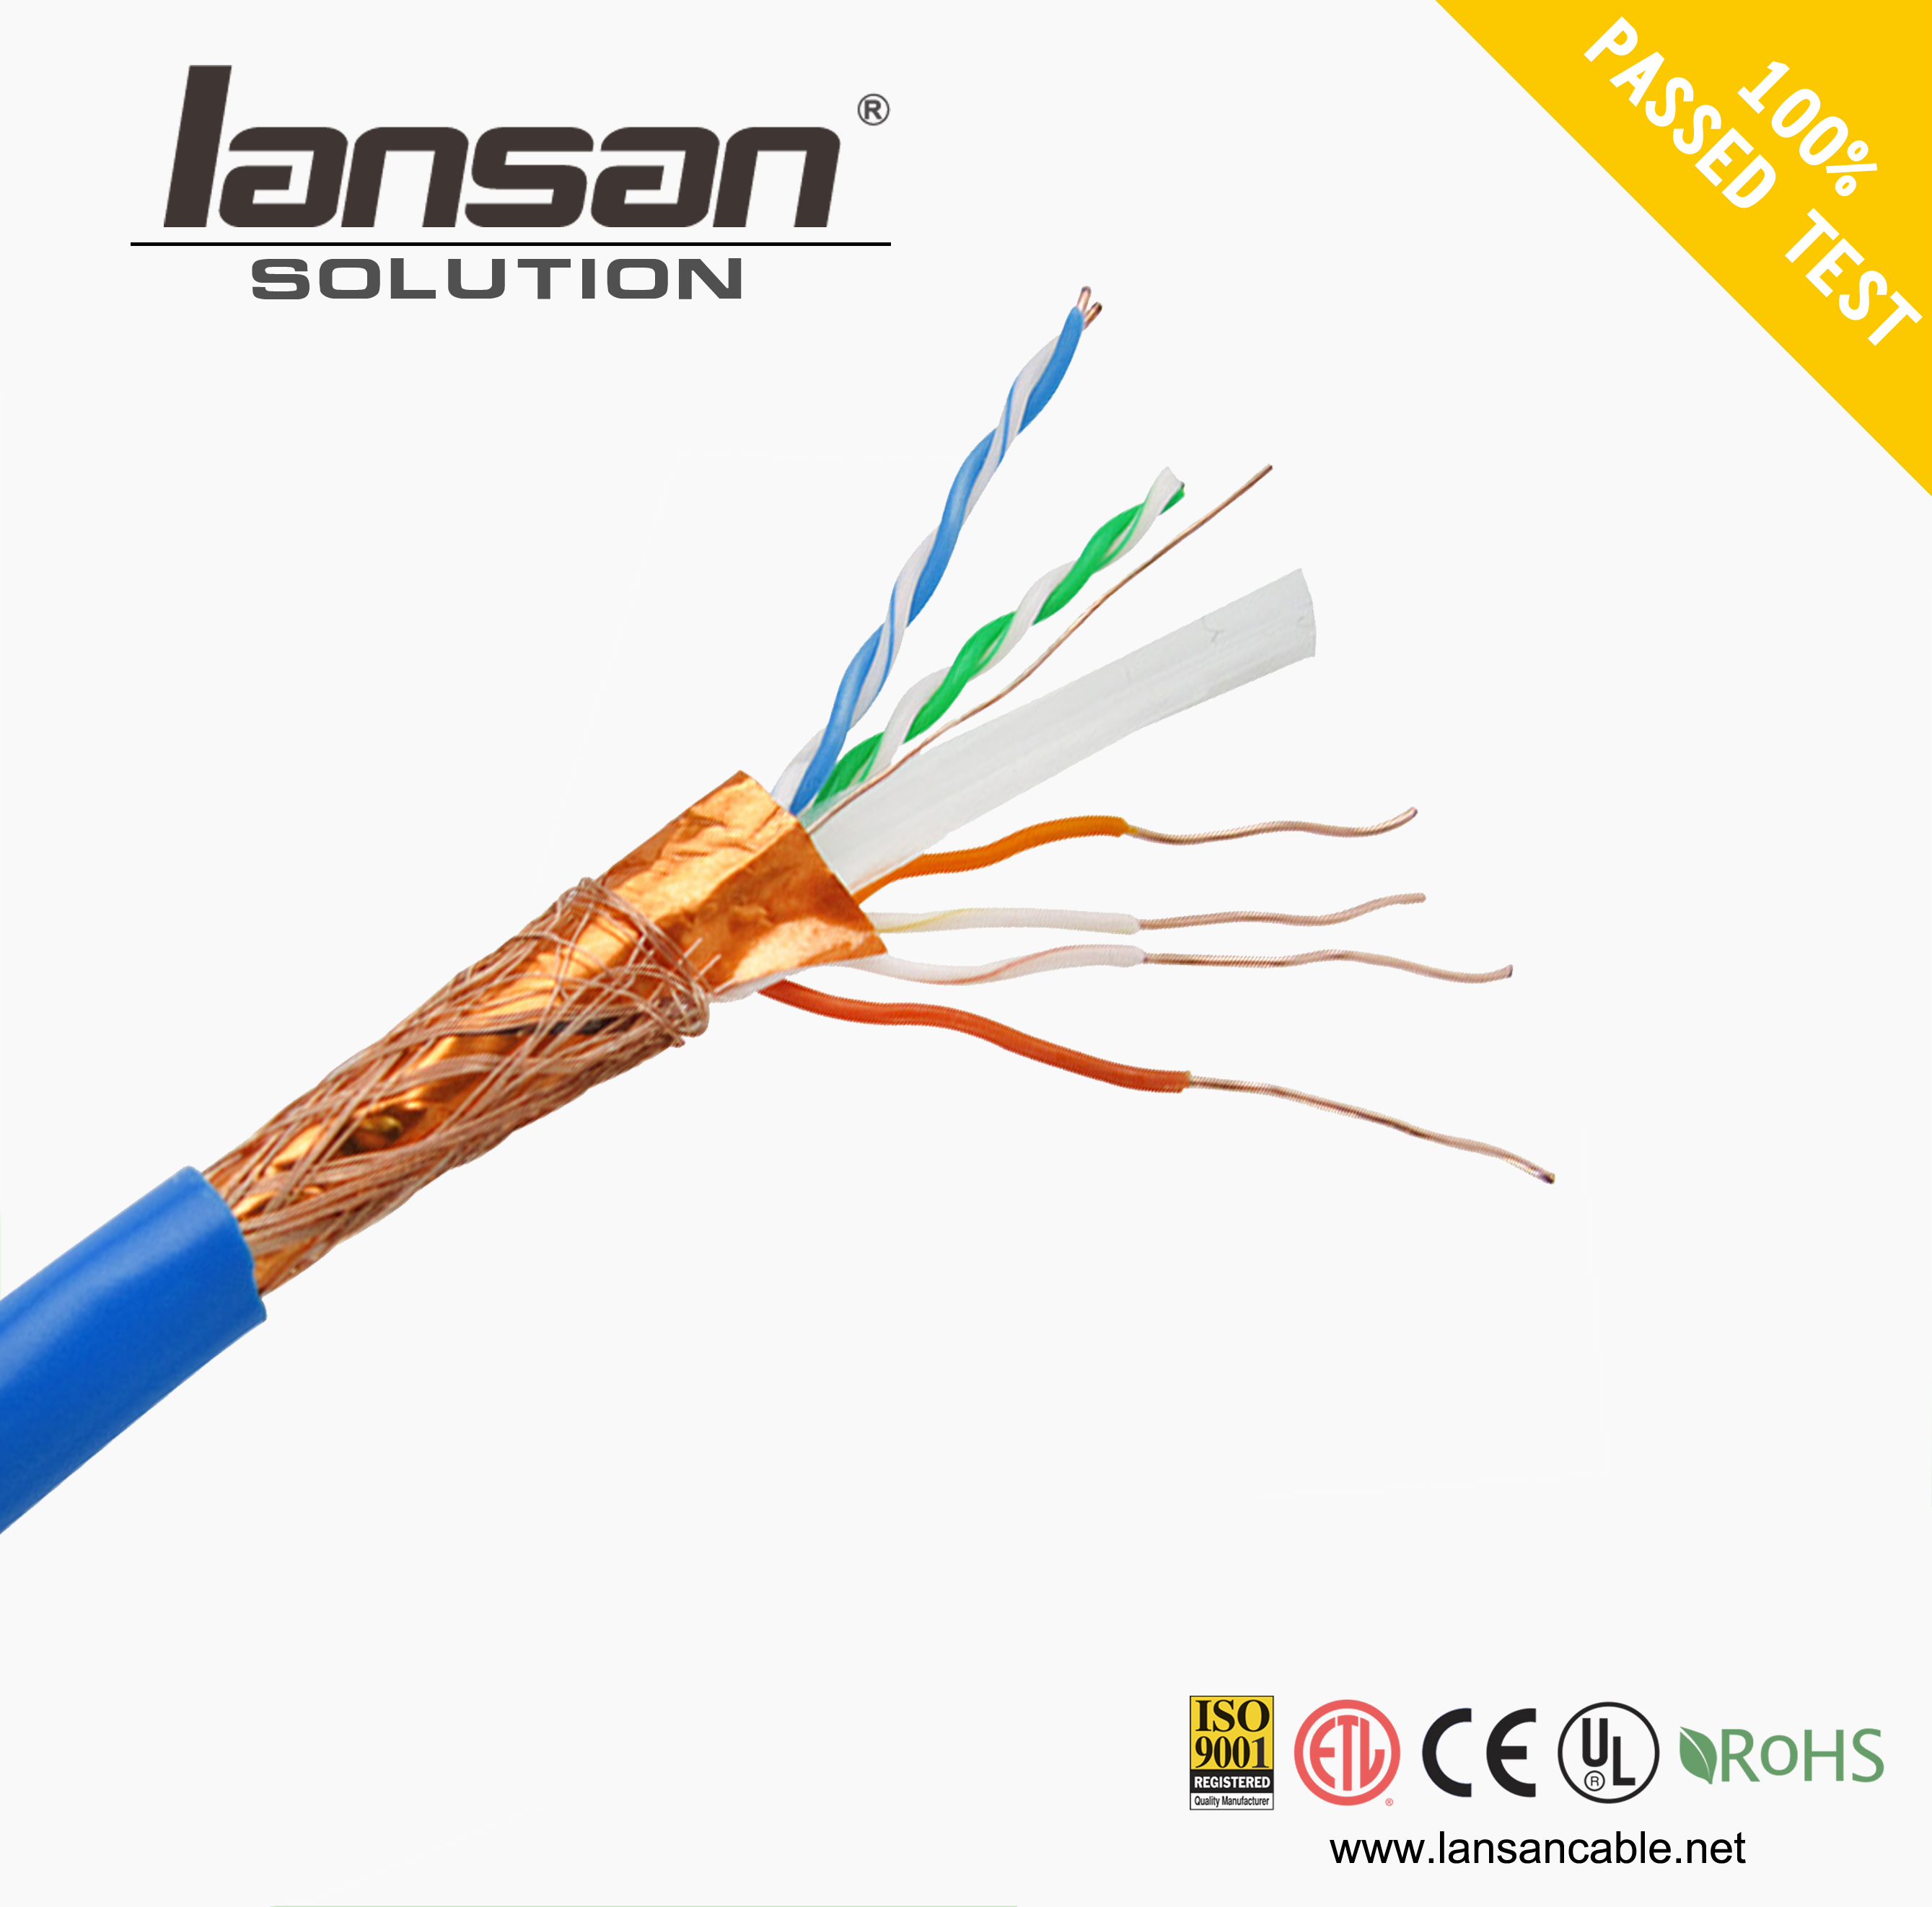 Low Price Lan cable CAT6 SFTP/FTP Cable 4 pairs 305m/roll of ISO9001 Standard